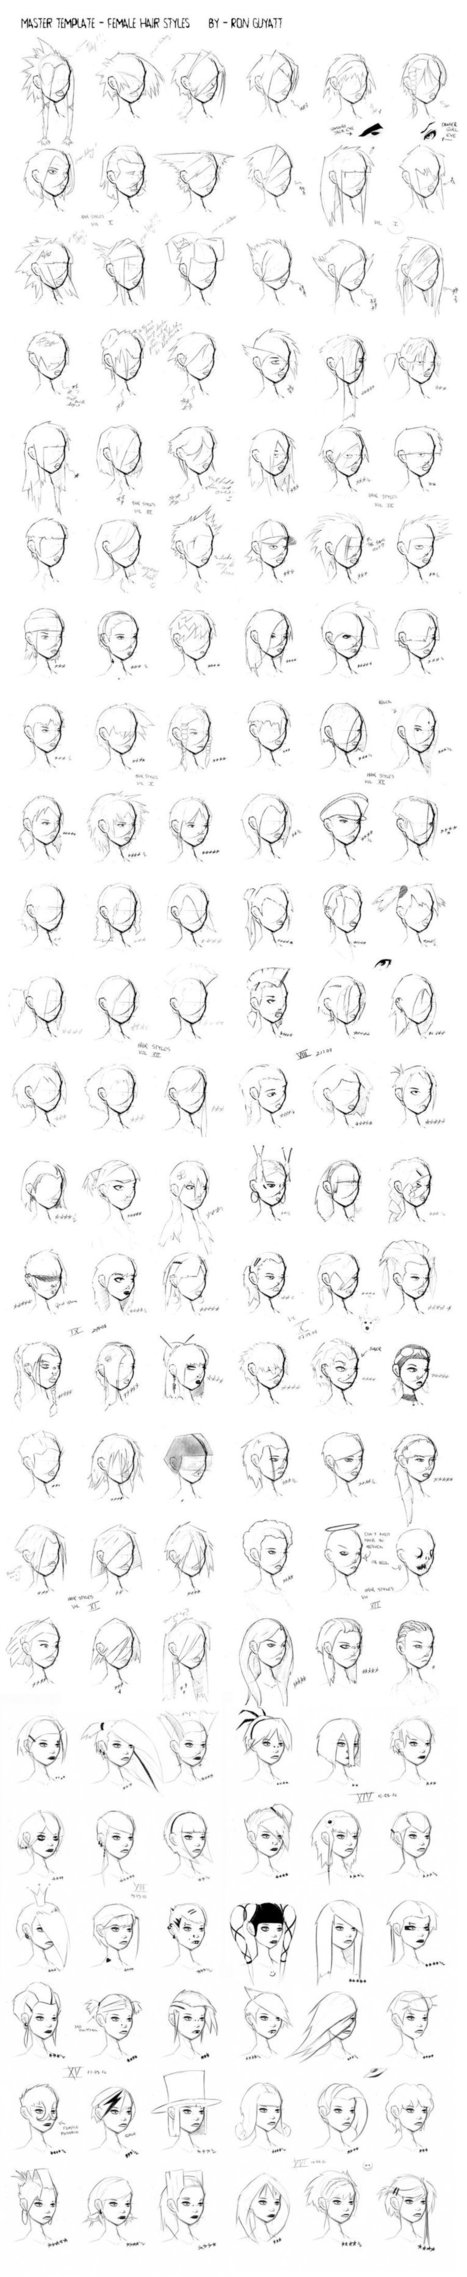 hairstyle drawing in Drawing References and Resources